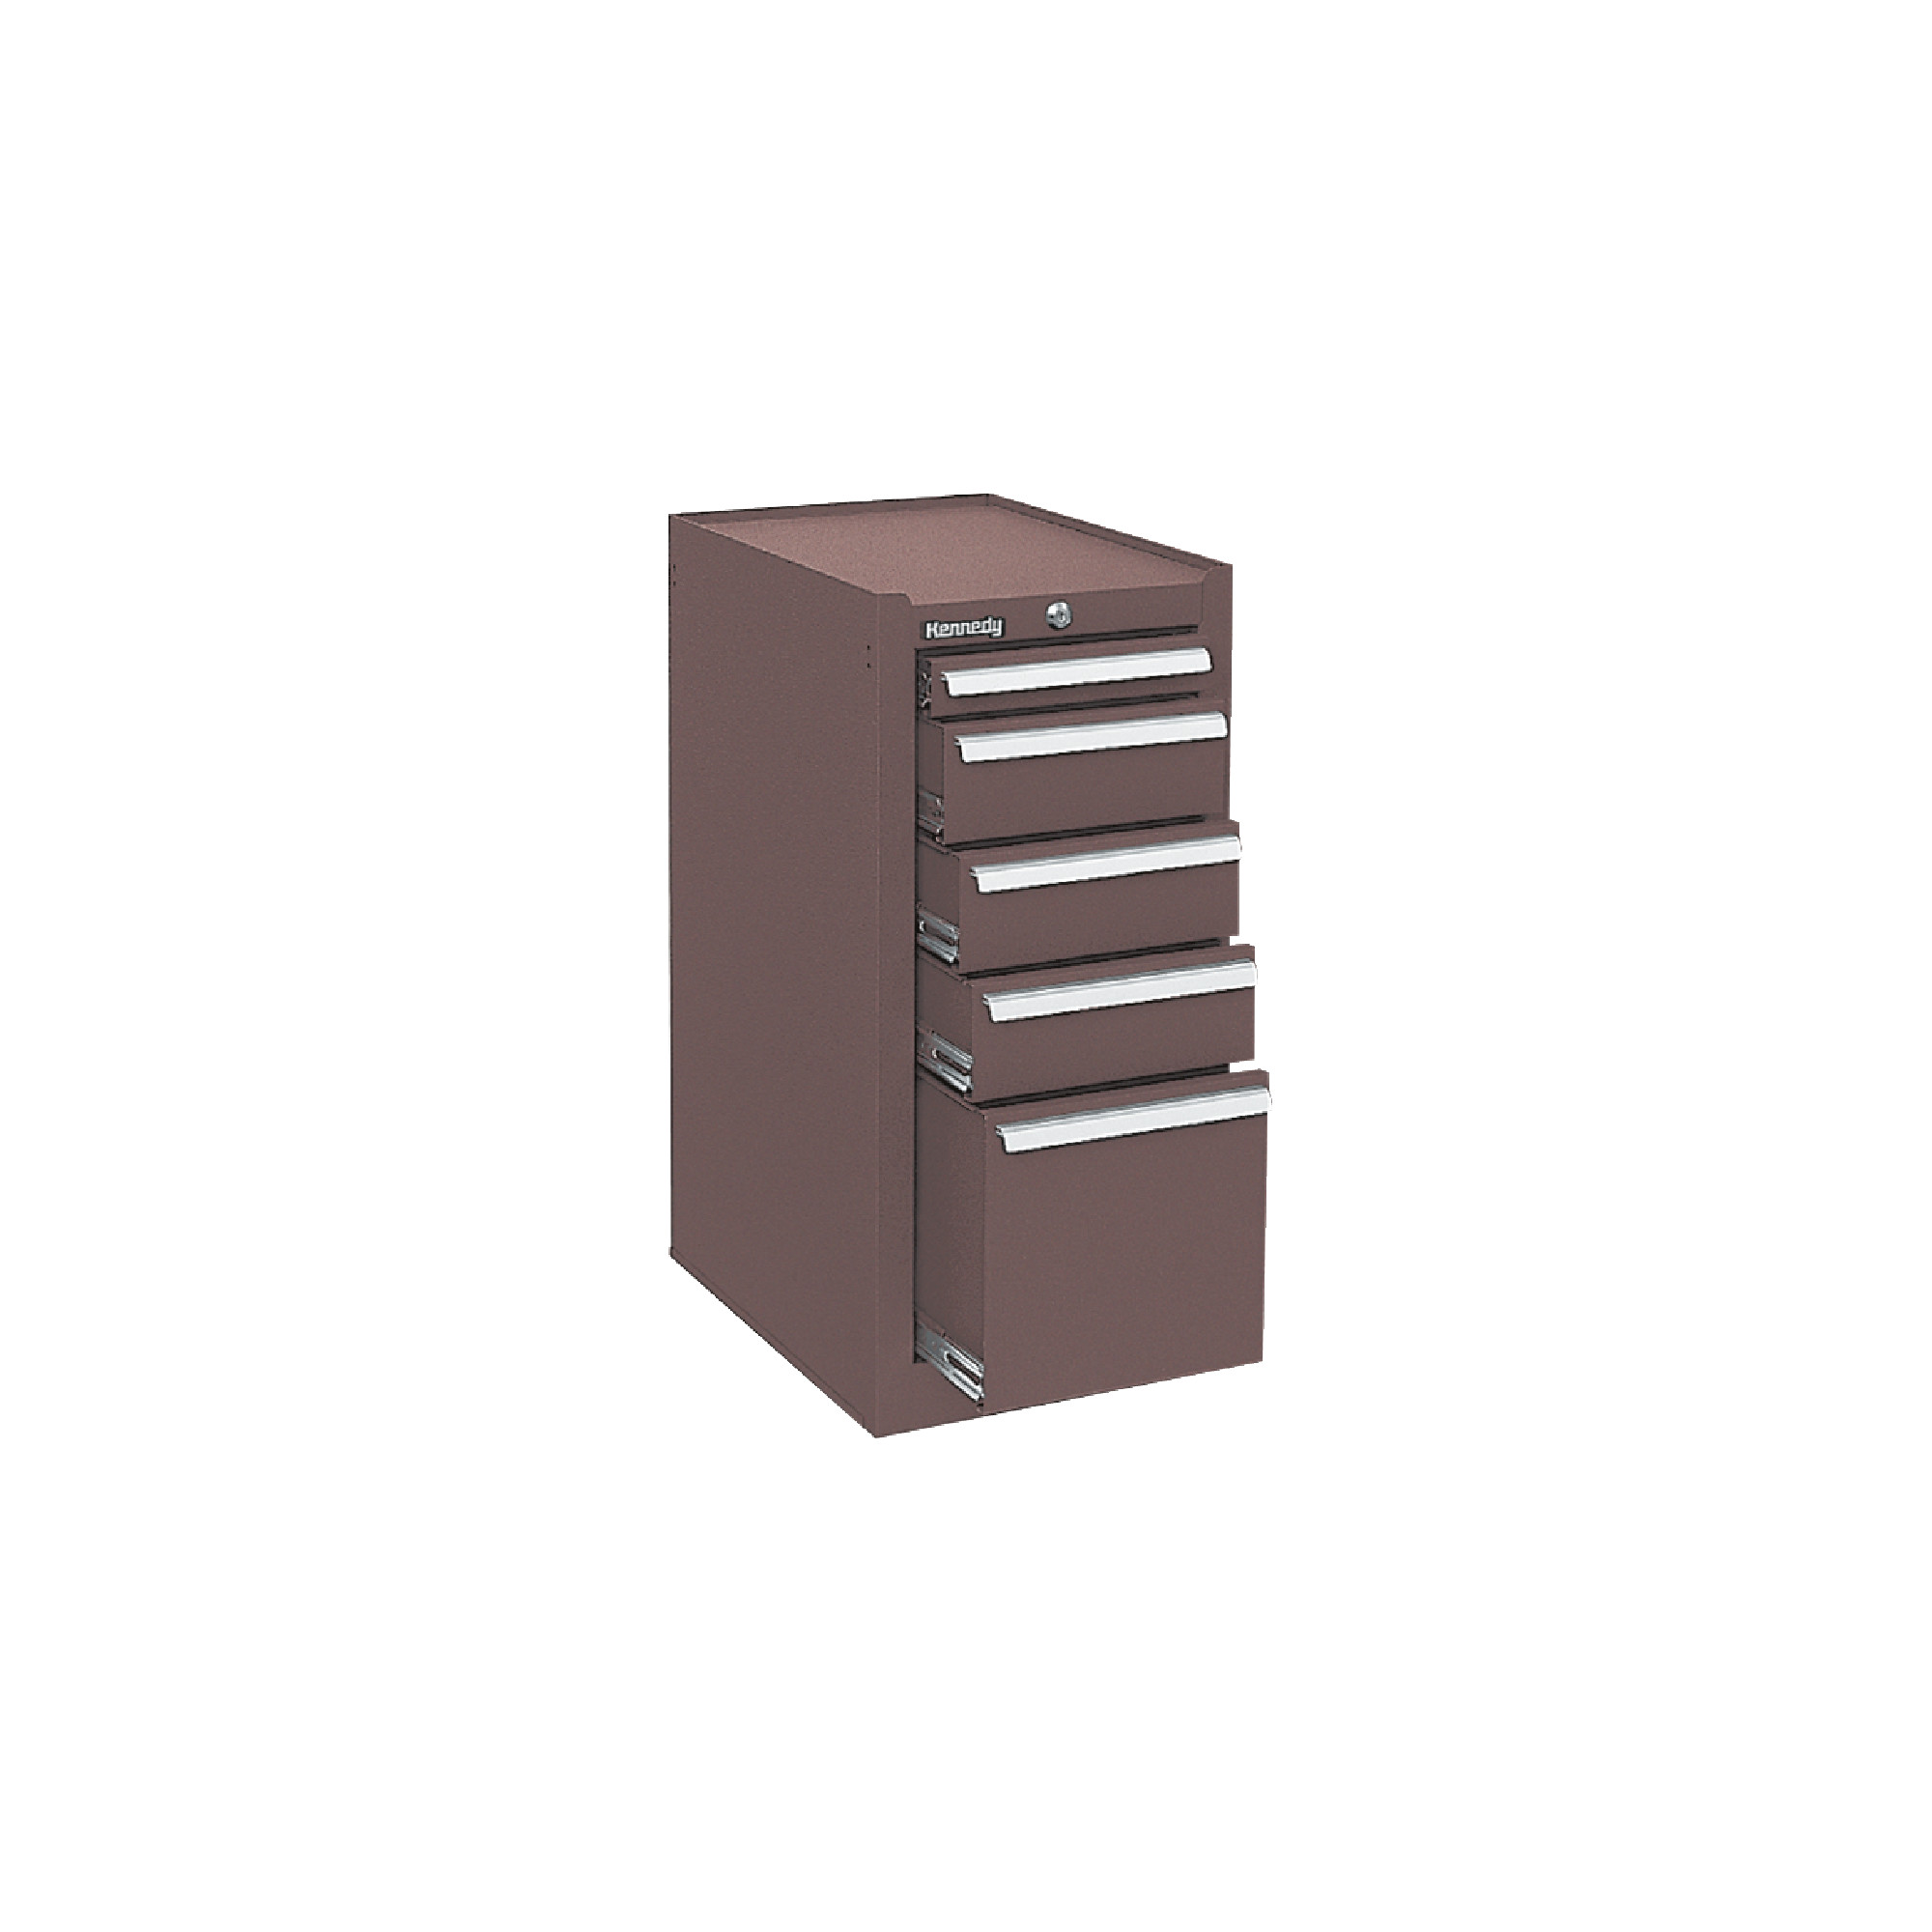 5 Drawer Hang-On Cabinet